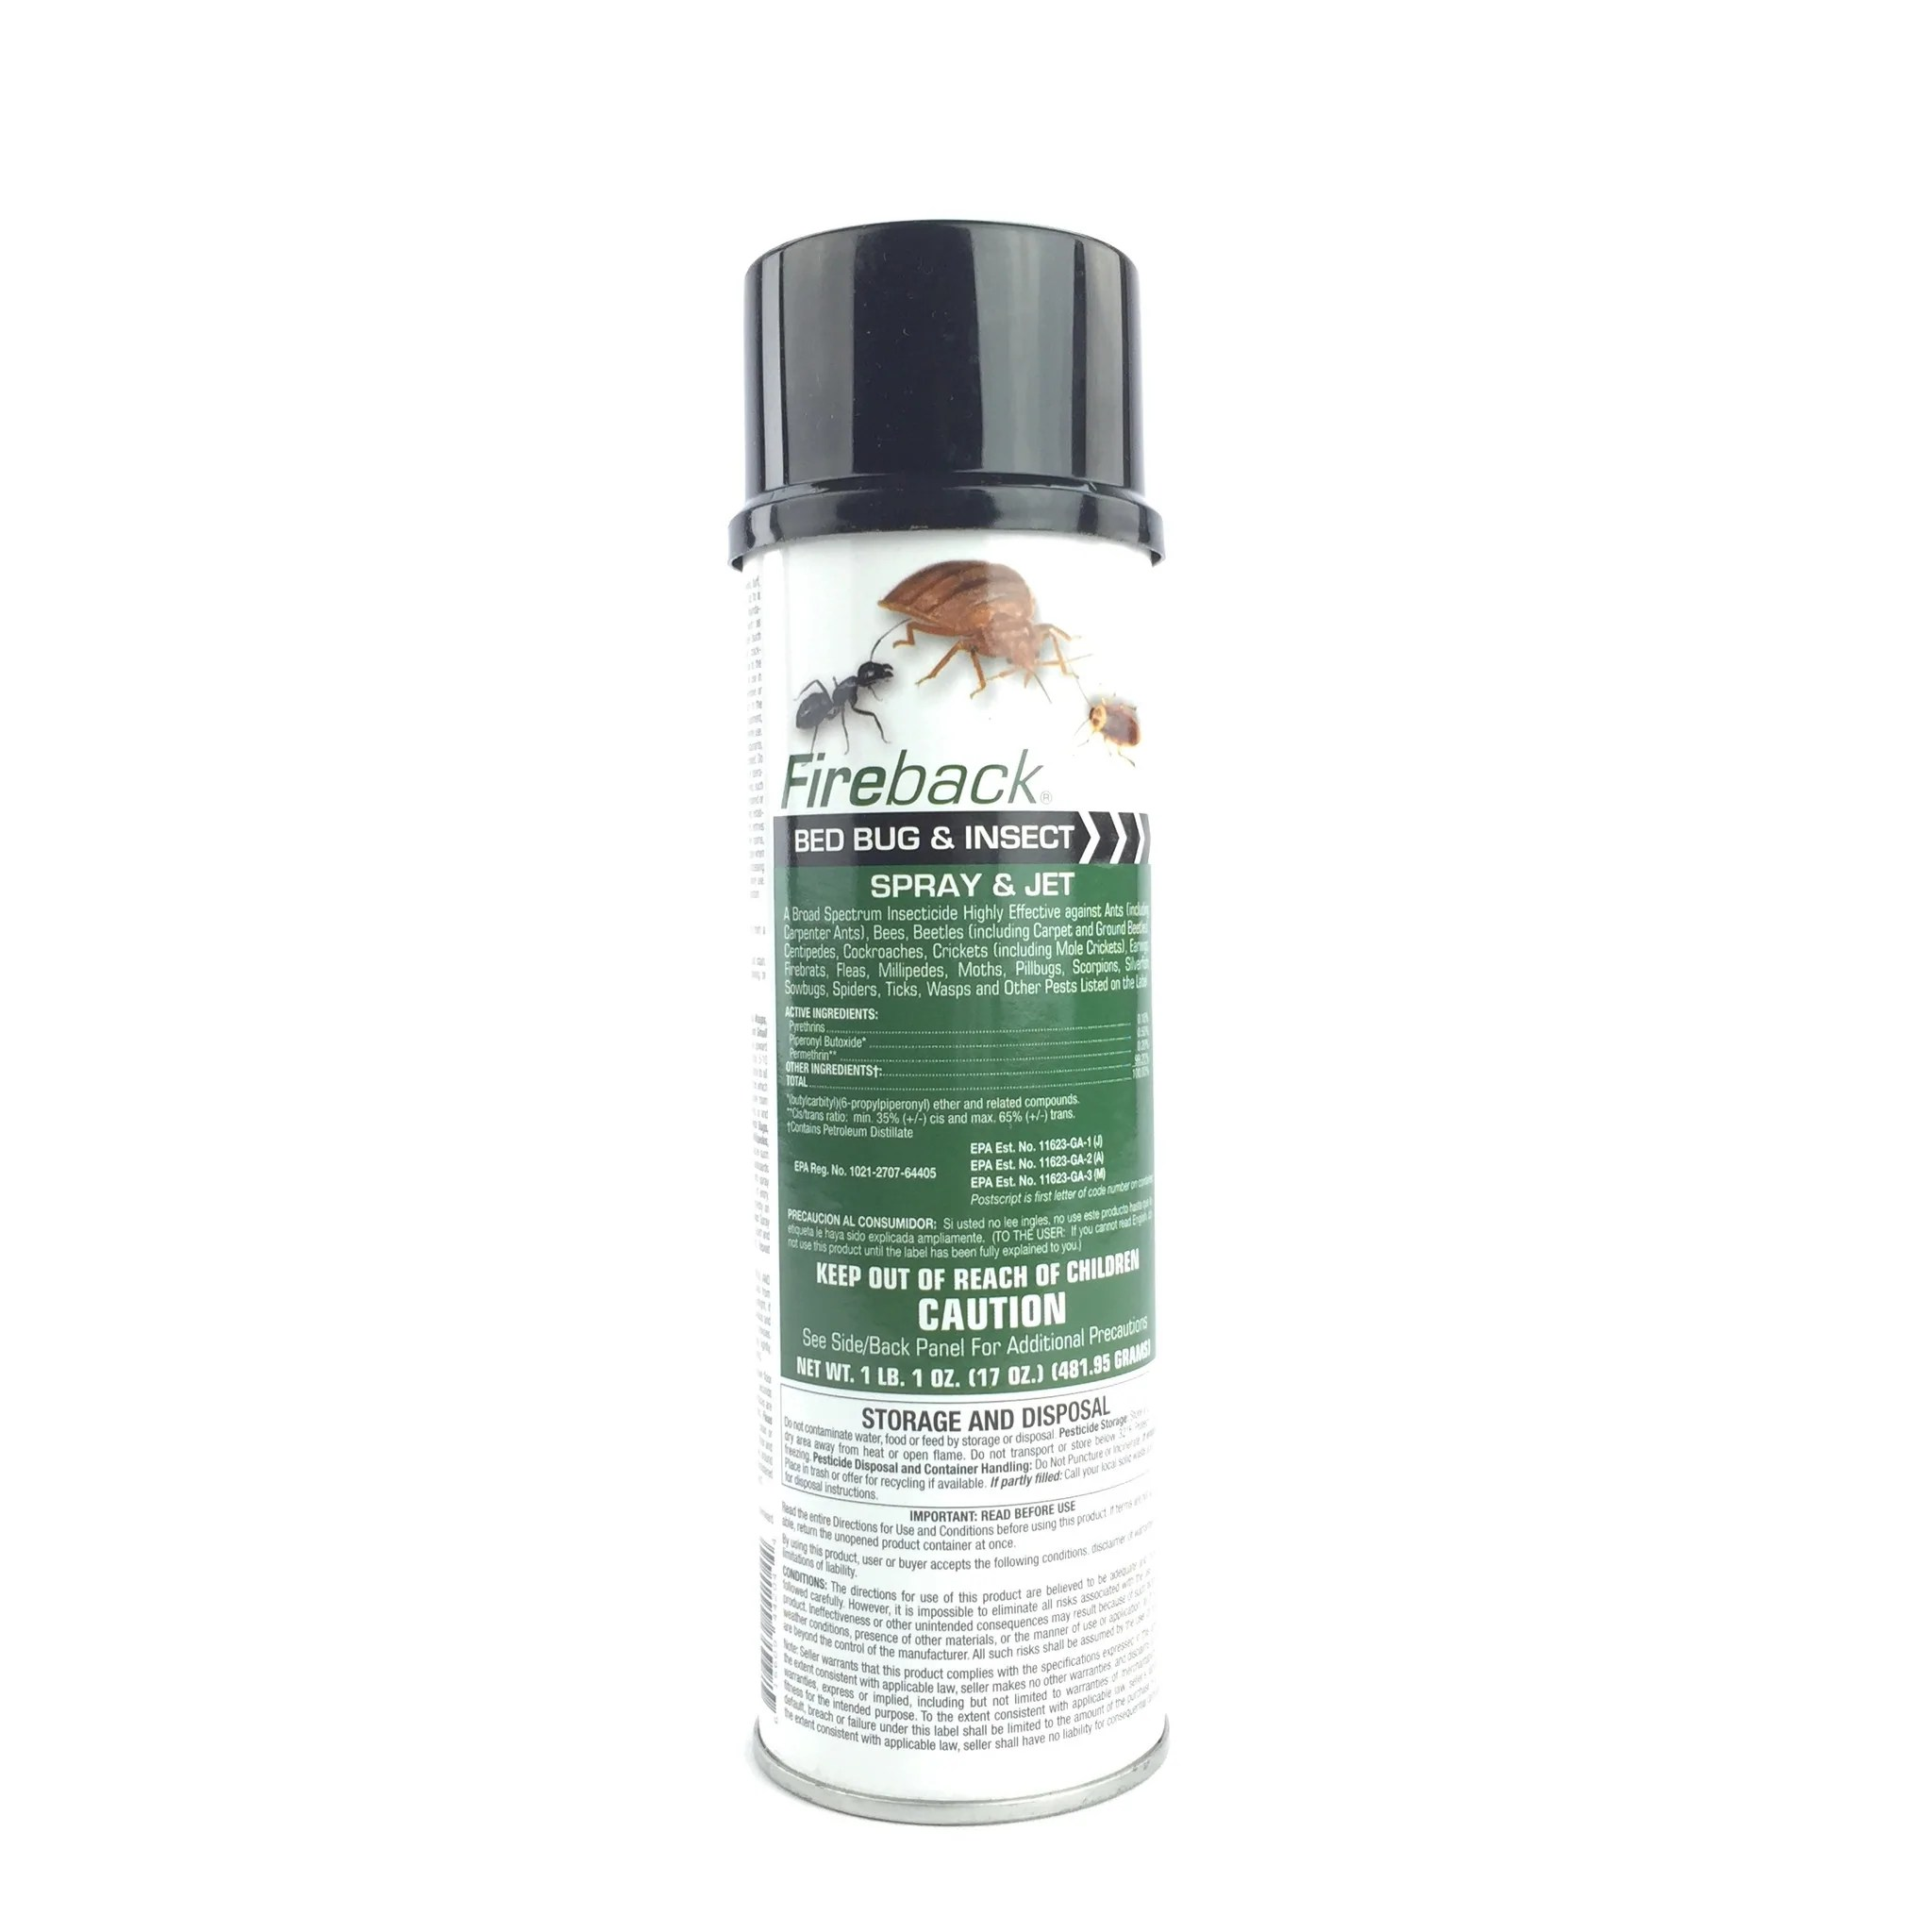 Sprays For Bed Bugs Details About Fireback Bed Bug And Insect Spray And Jet